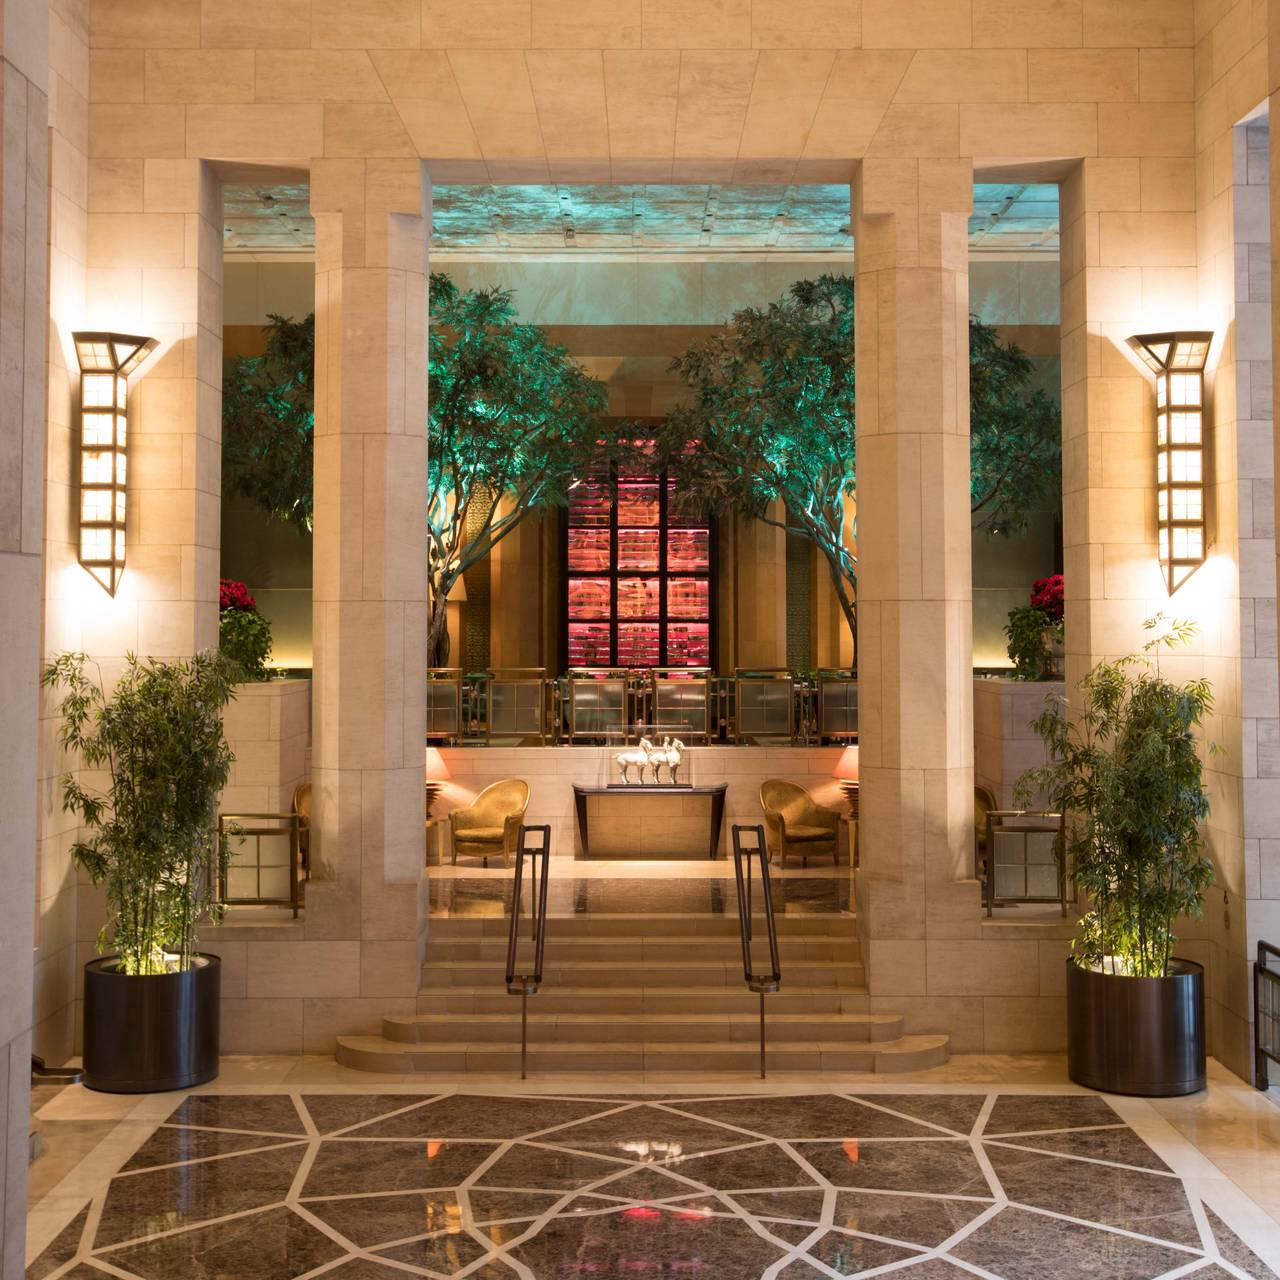 The Garden at The Four Seasons Restaurant - New York, NY | OpenTable